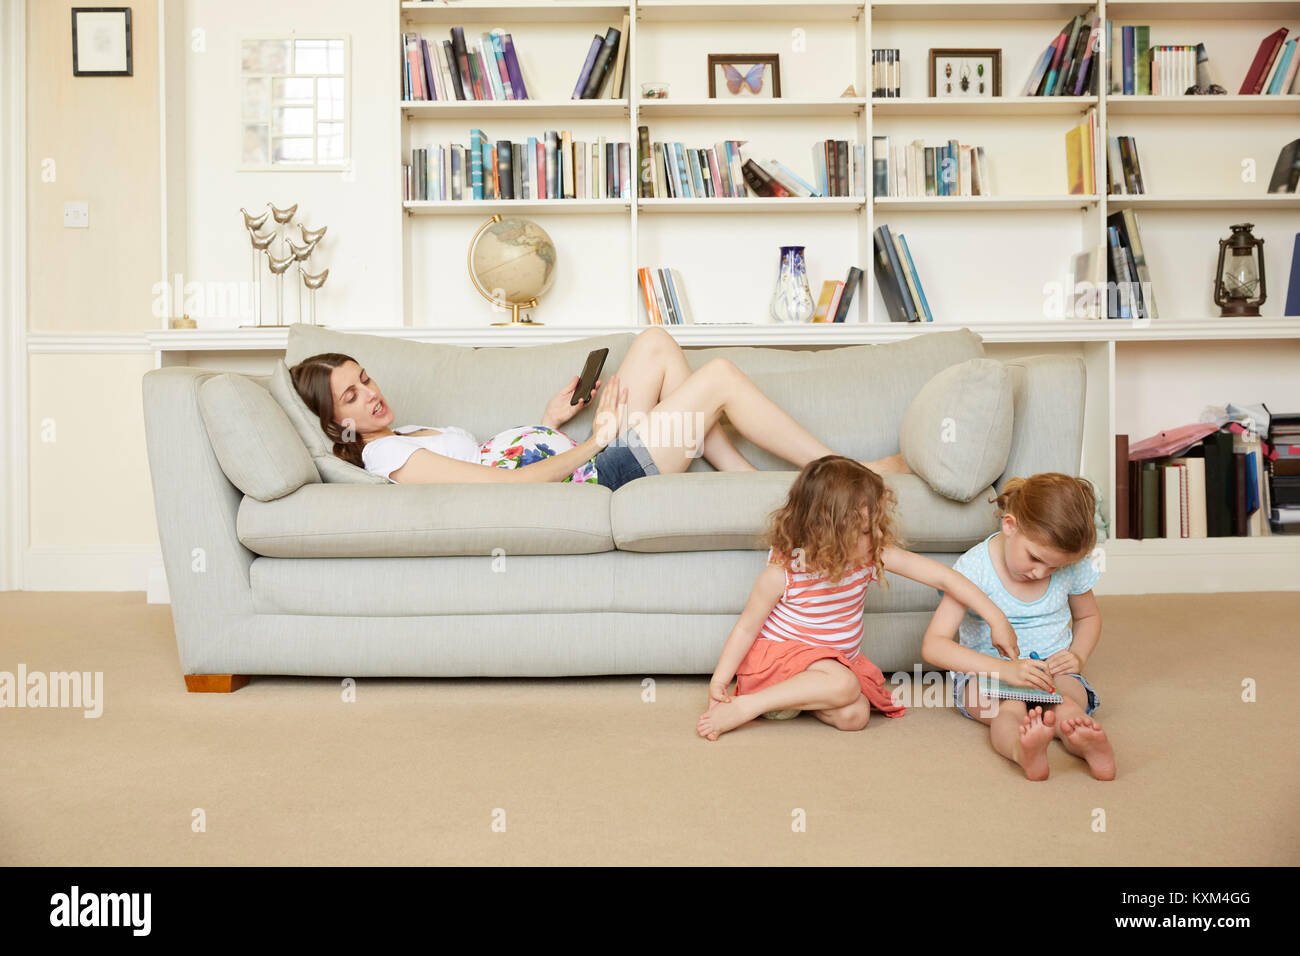 Pregnant woman reclining on sofa with smartphone and daughters sitting on floor drawing - Stock Image